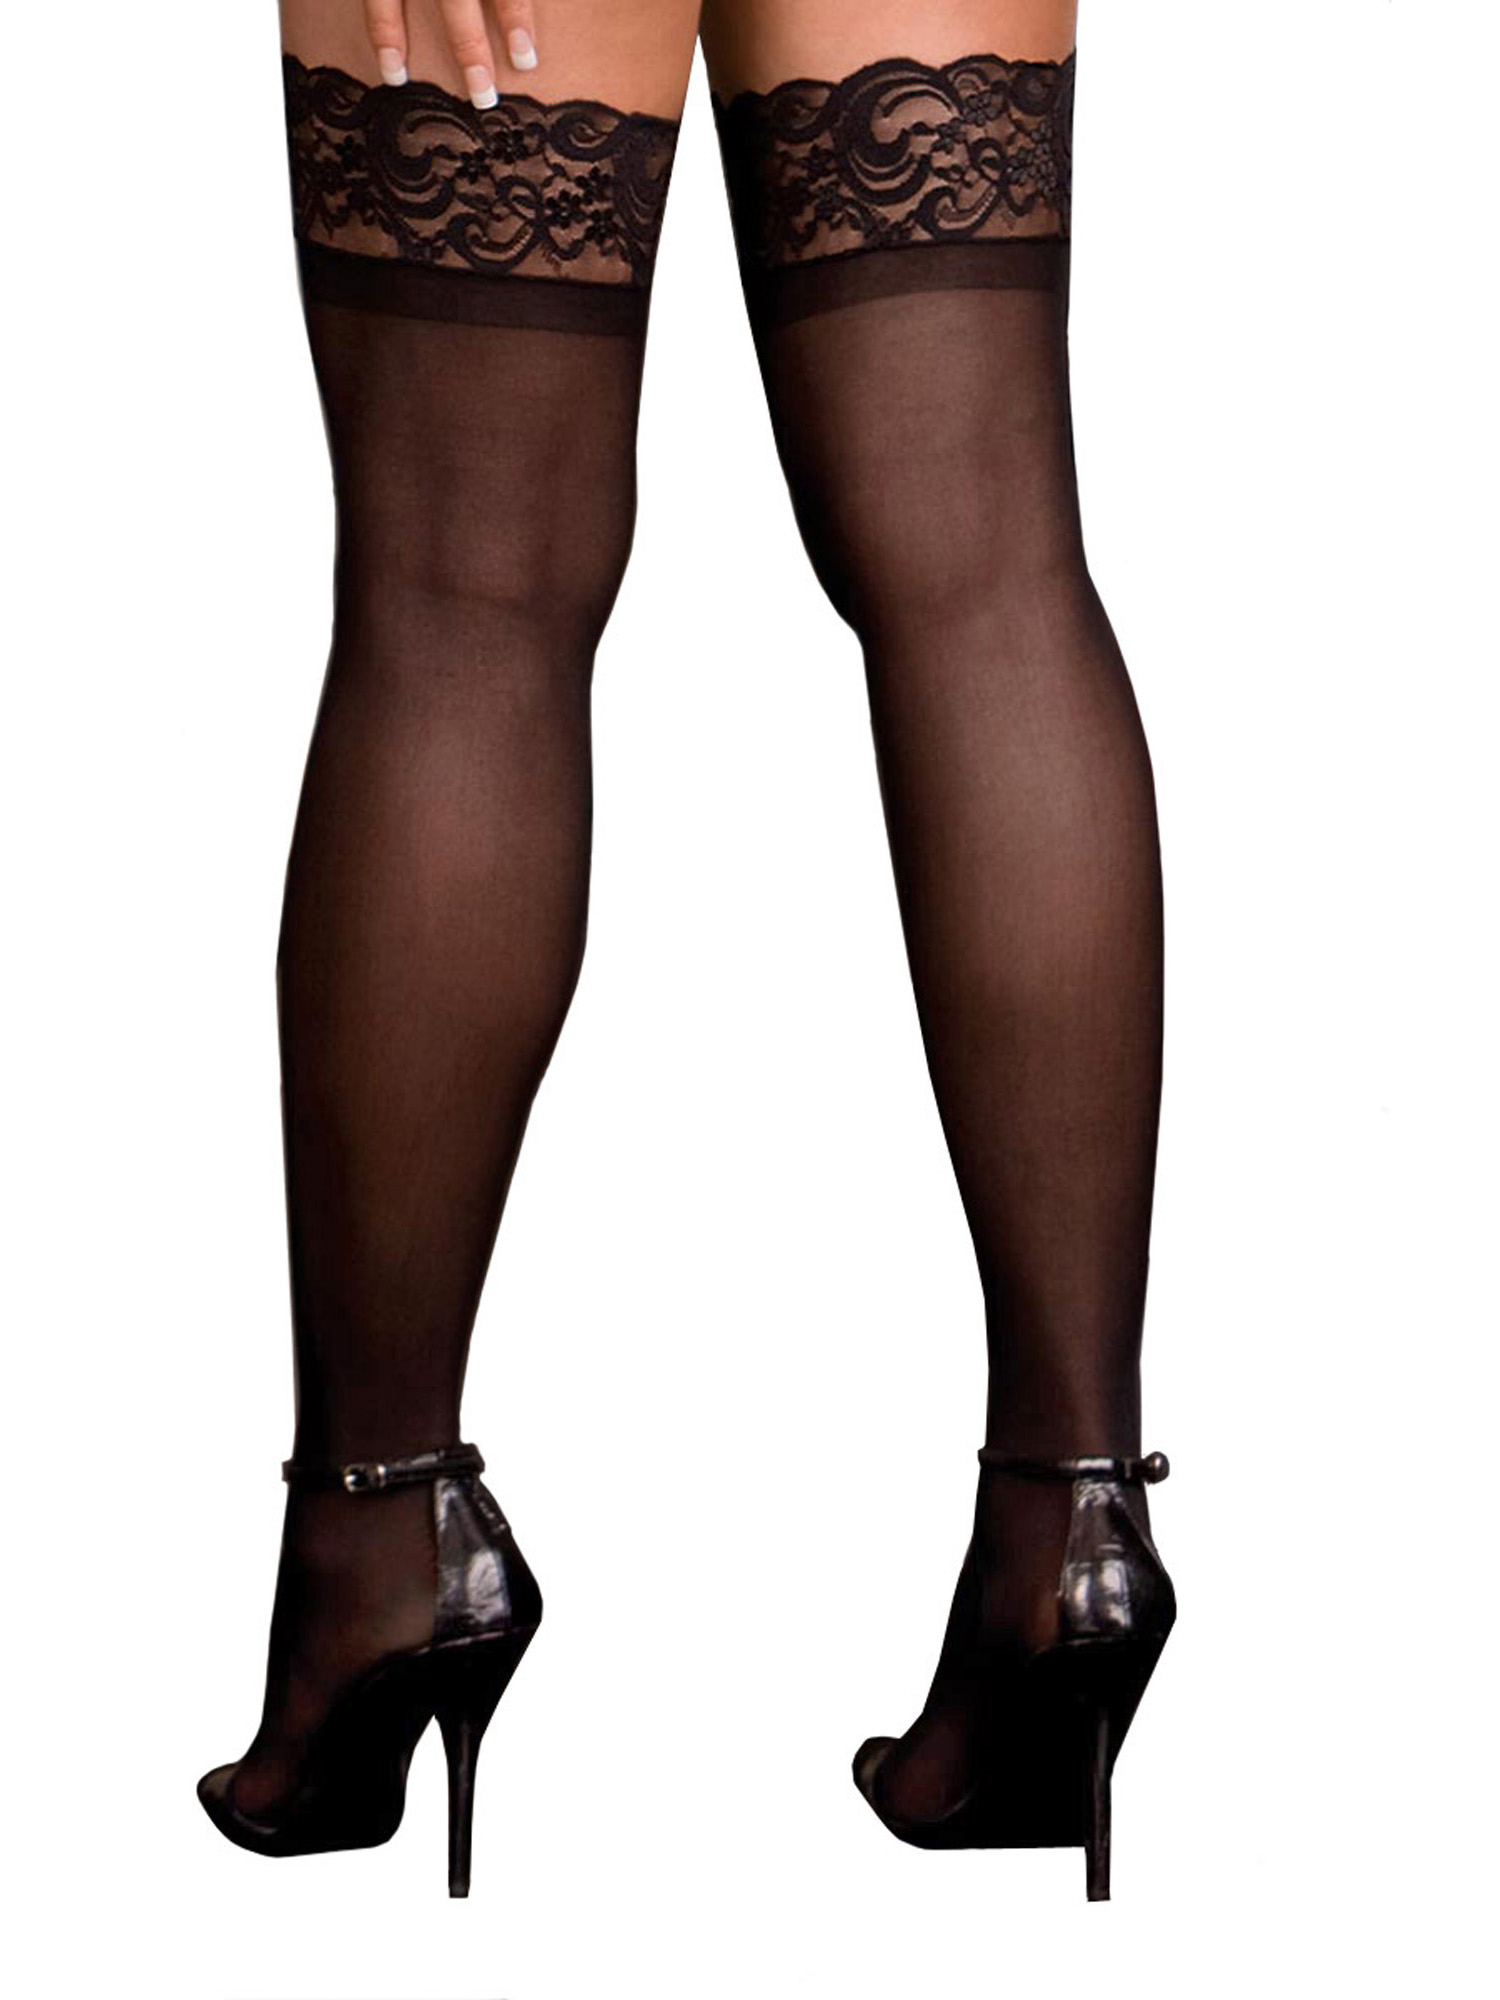 e3d3624b200 Plus Size Hosiery Lingerie Lace Top Sheer Thigh High Stocking- Fits ...